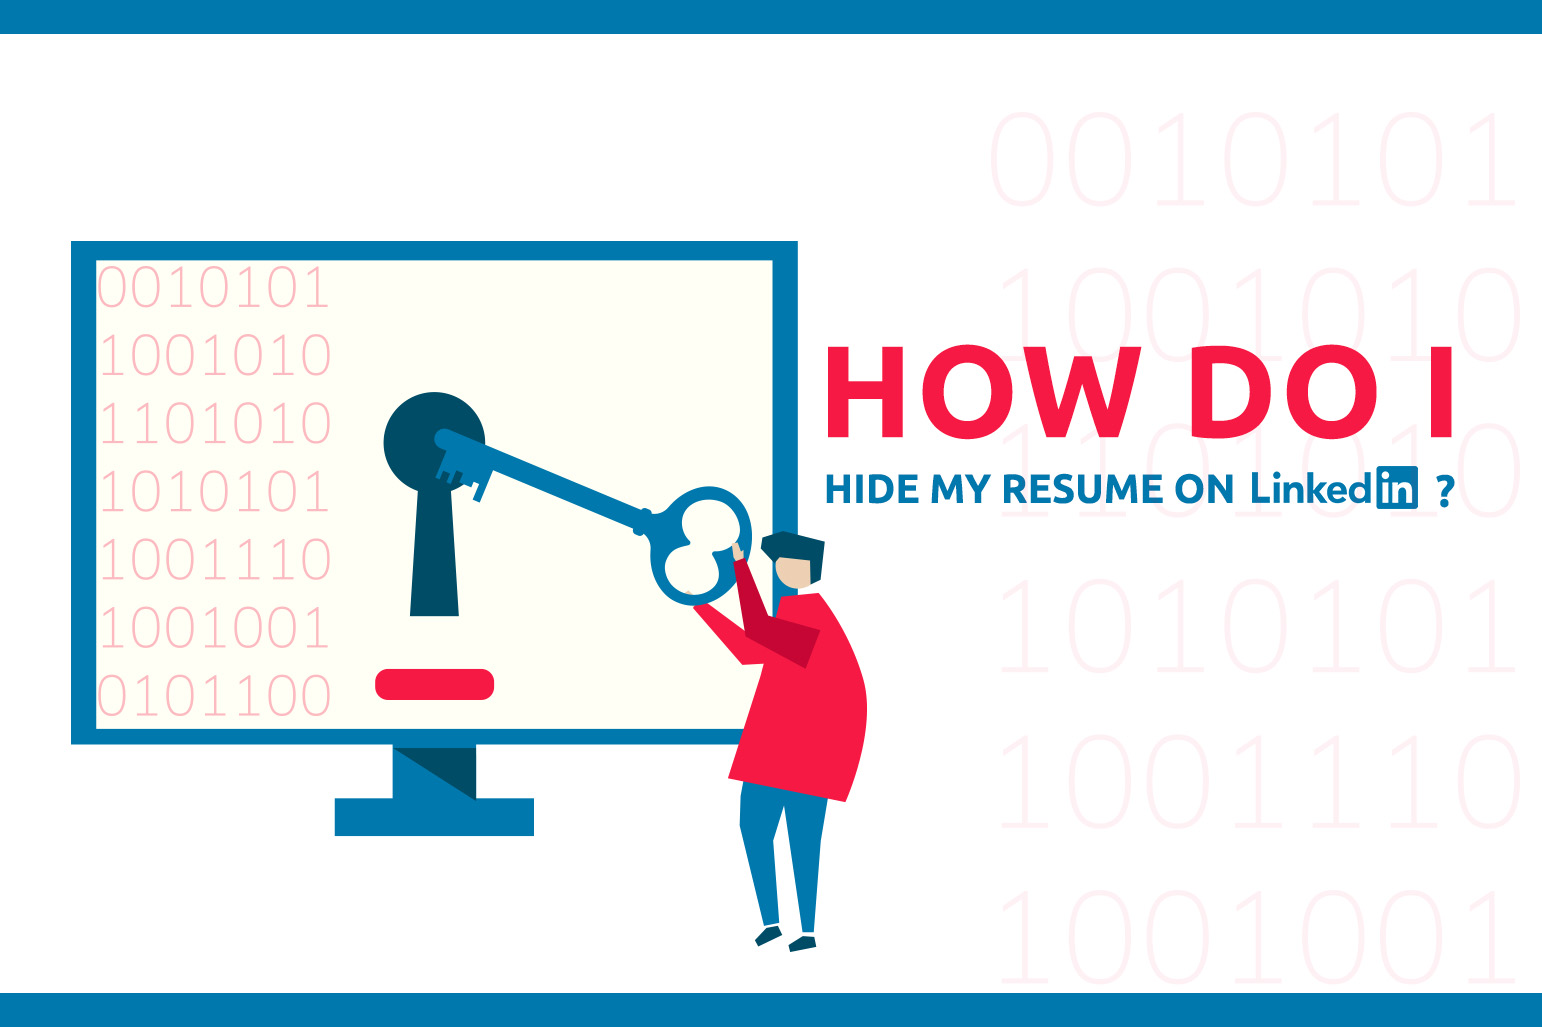 How Do I Hide My Resume On LinkedIn?